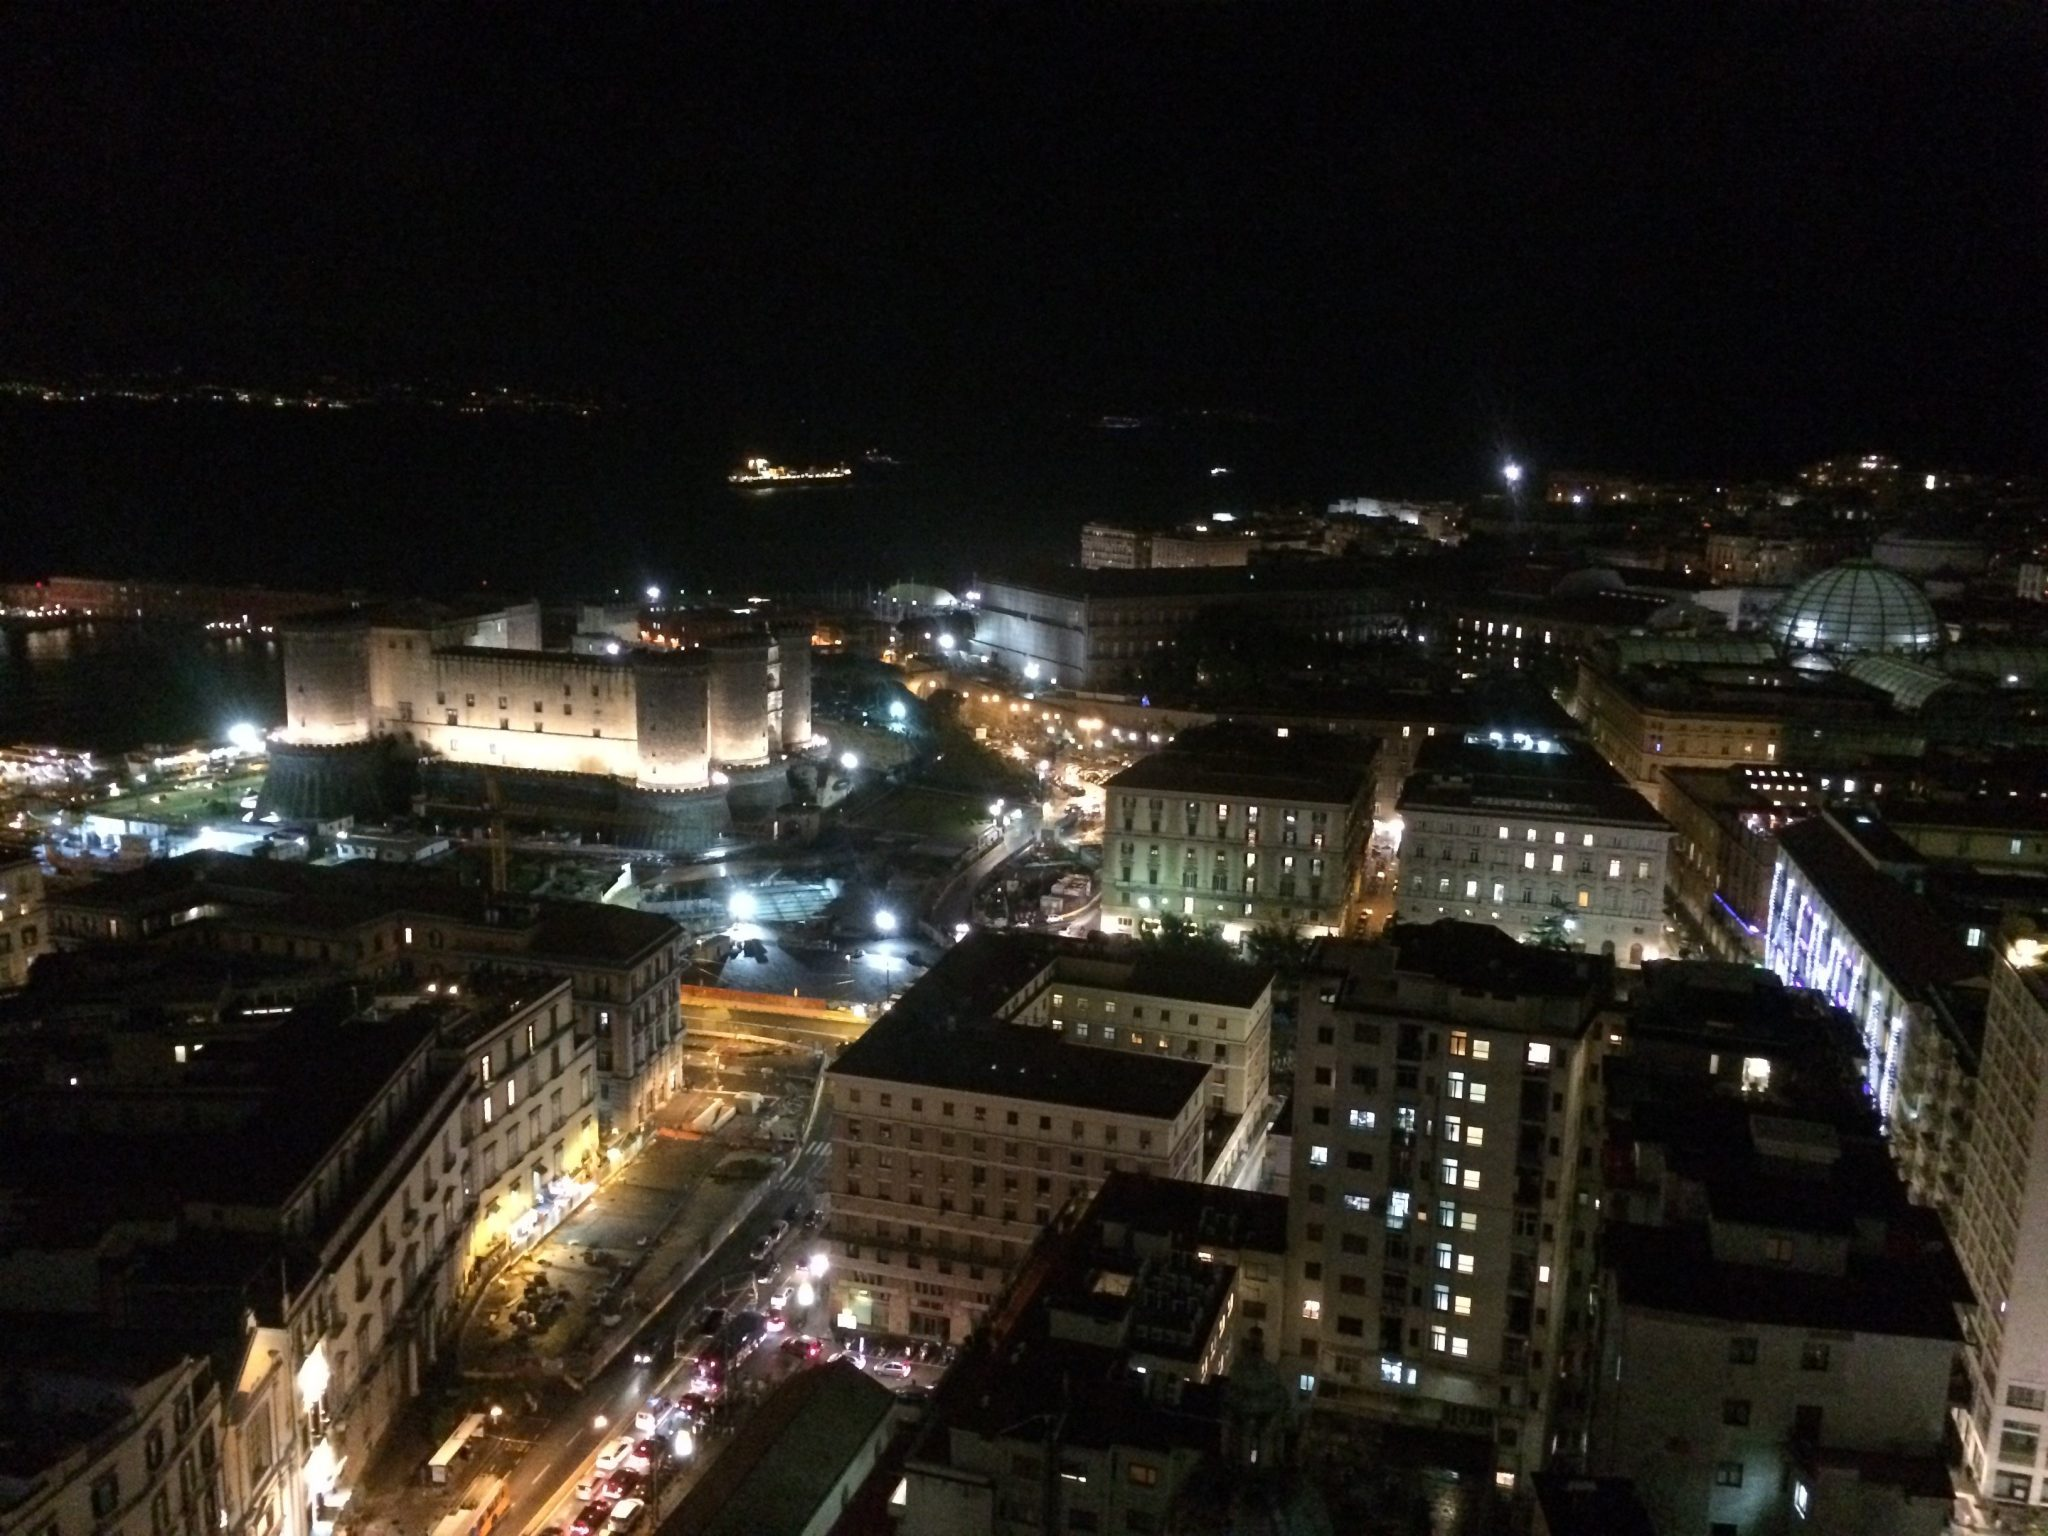 A Michelin star dinner in Naples